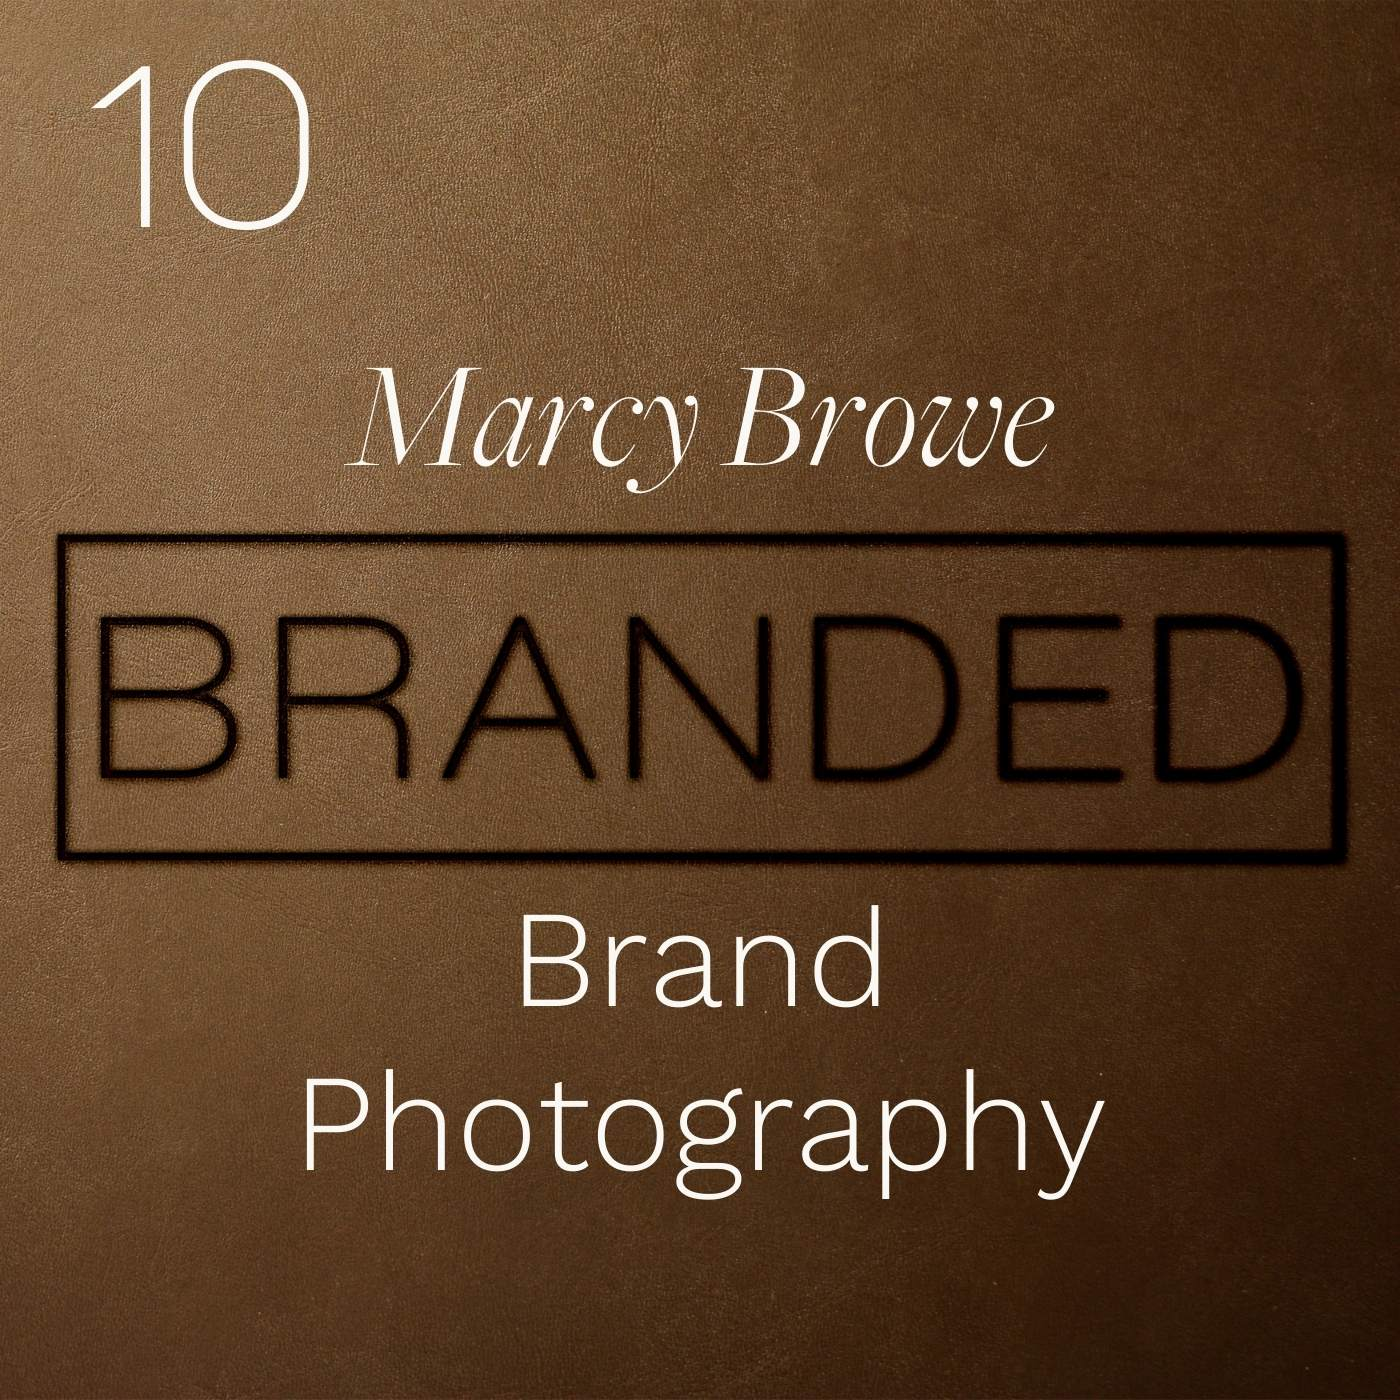 010 Marcy Browe: Brand Photography, Music, and Appreciation